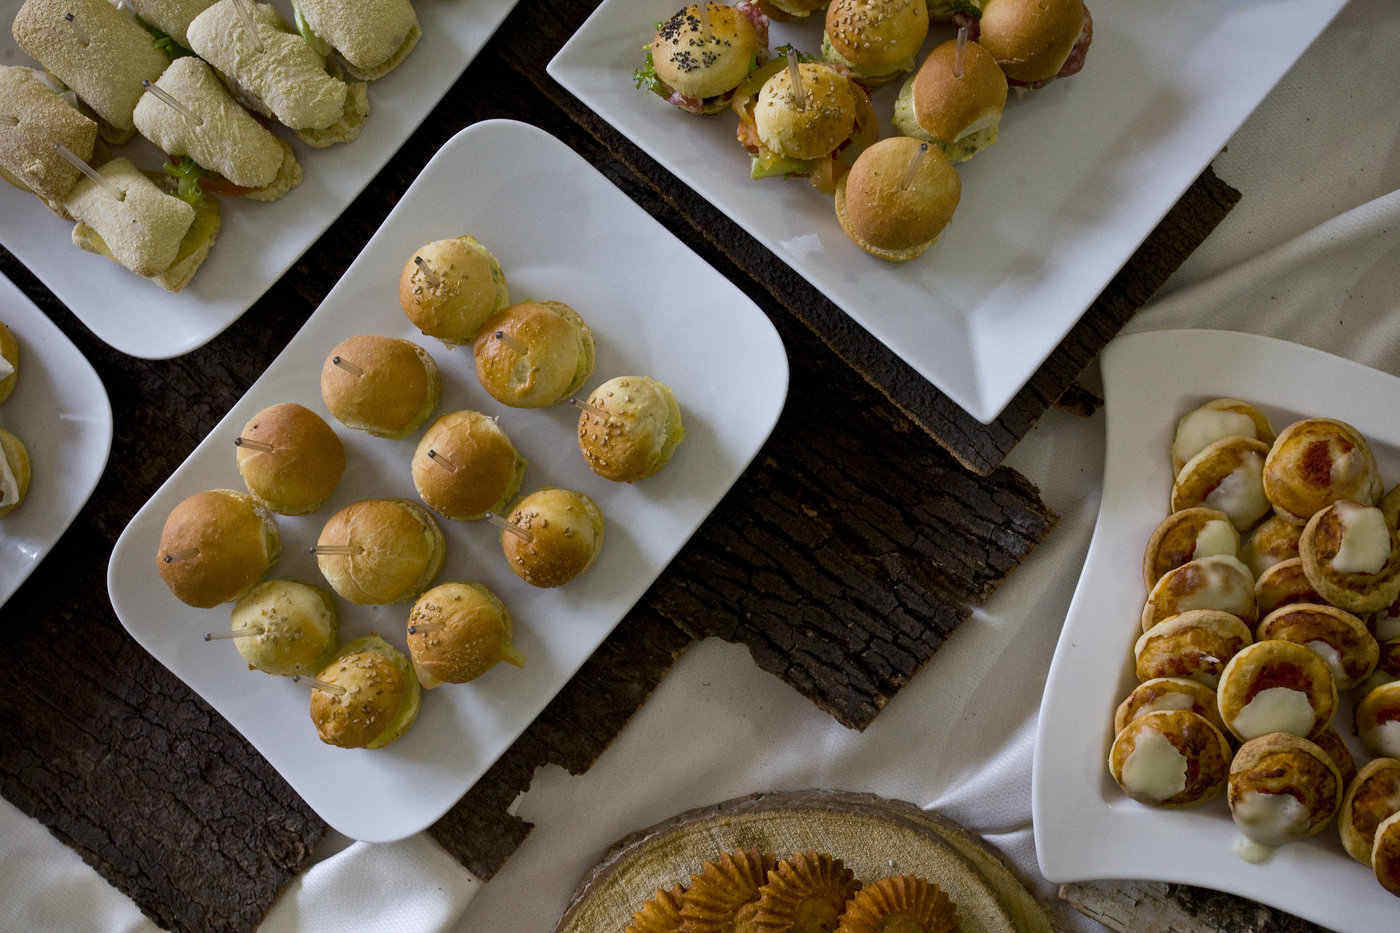 plates of toothpick party foods